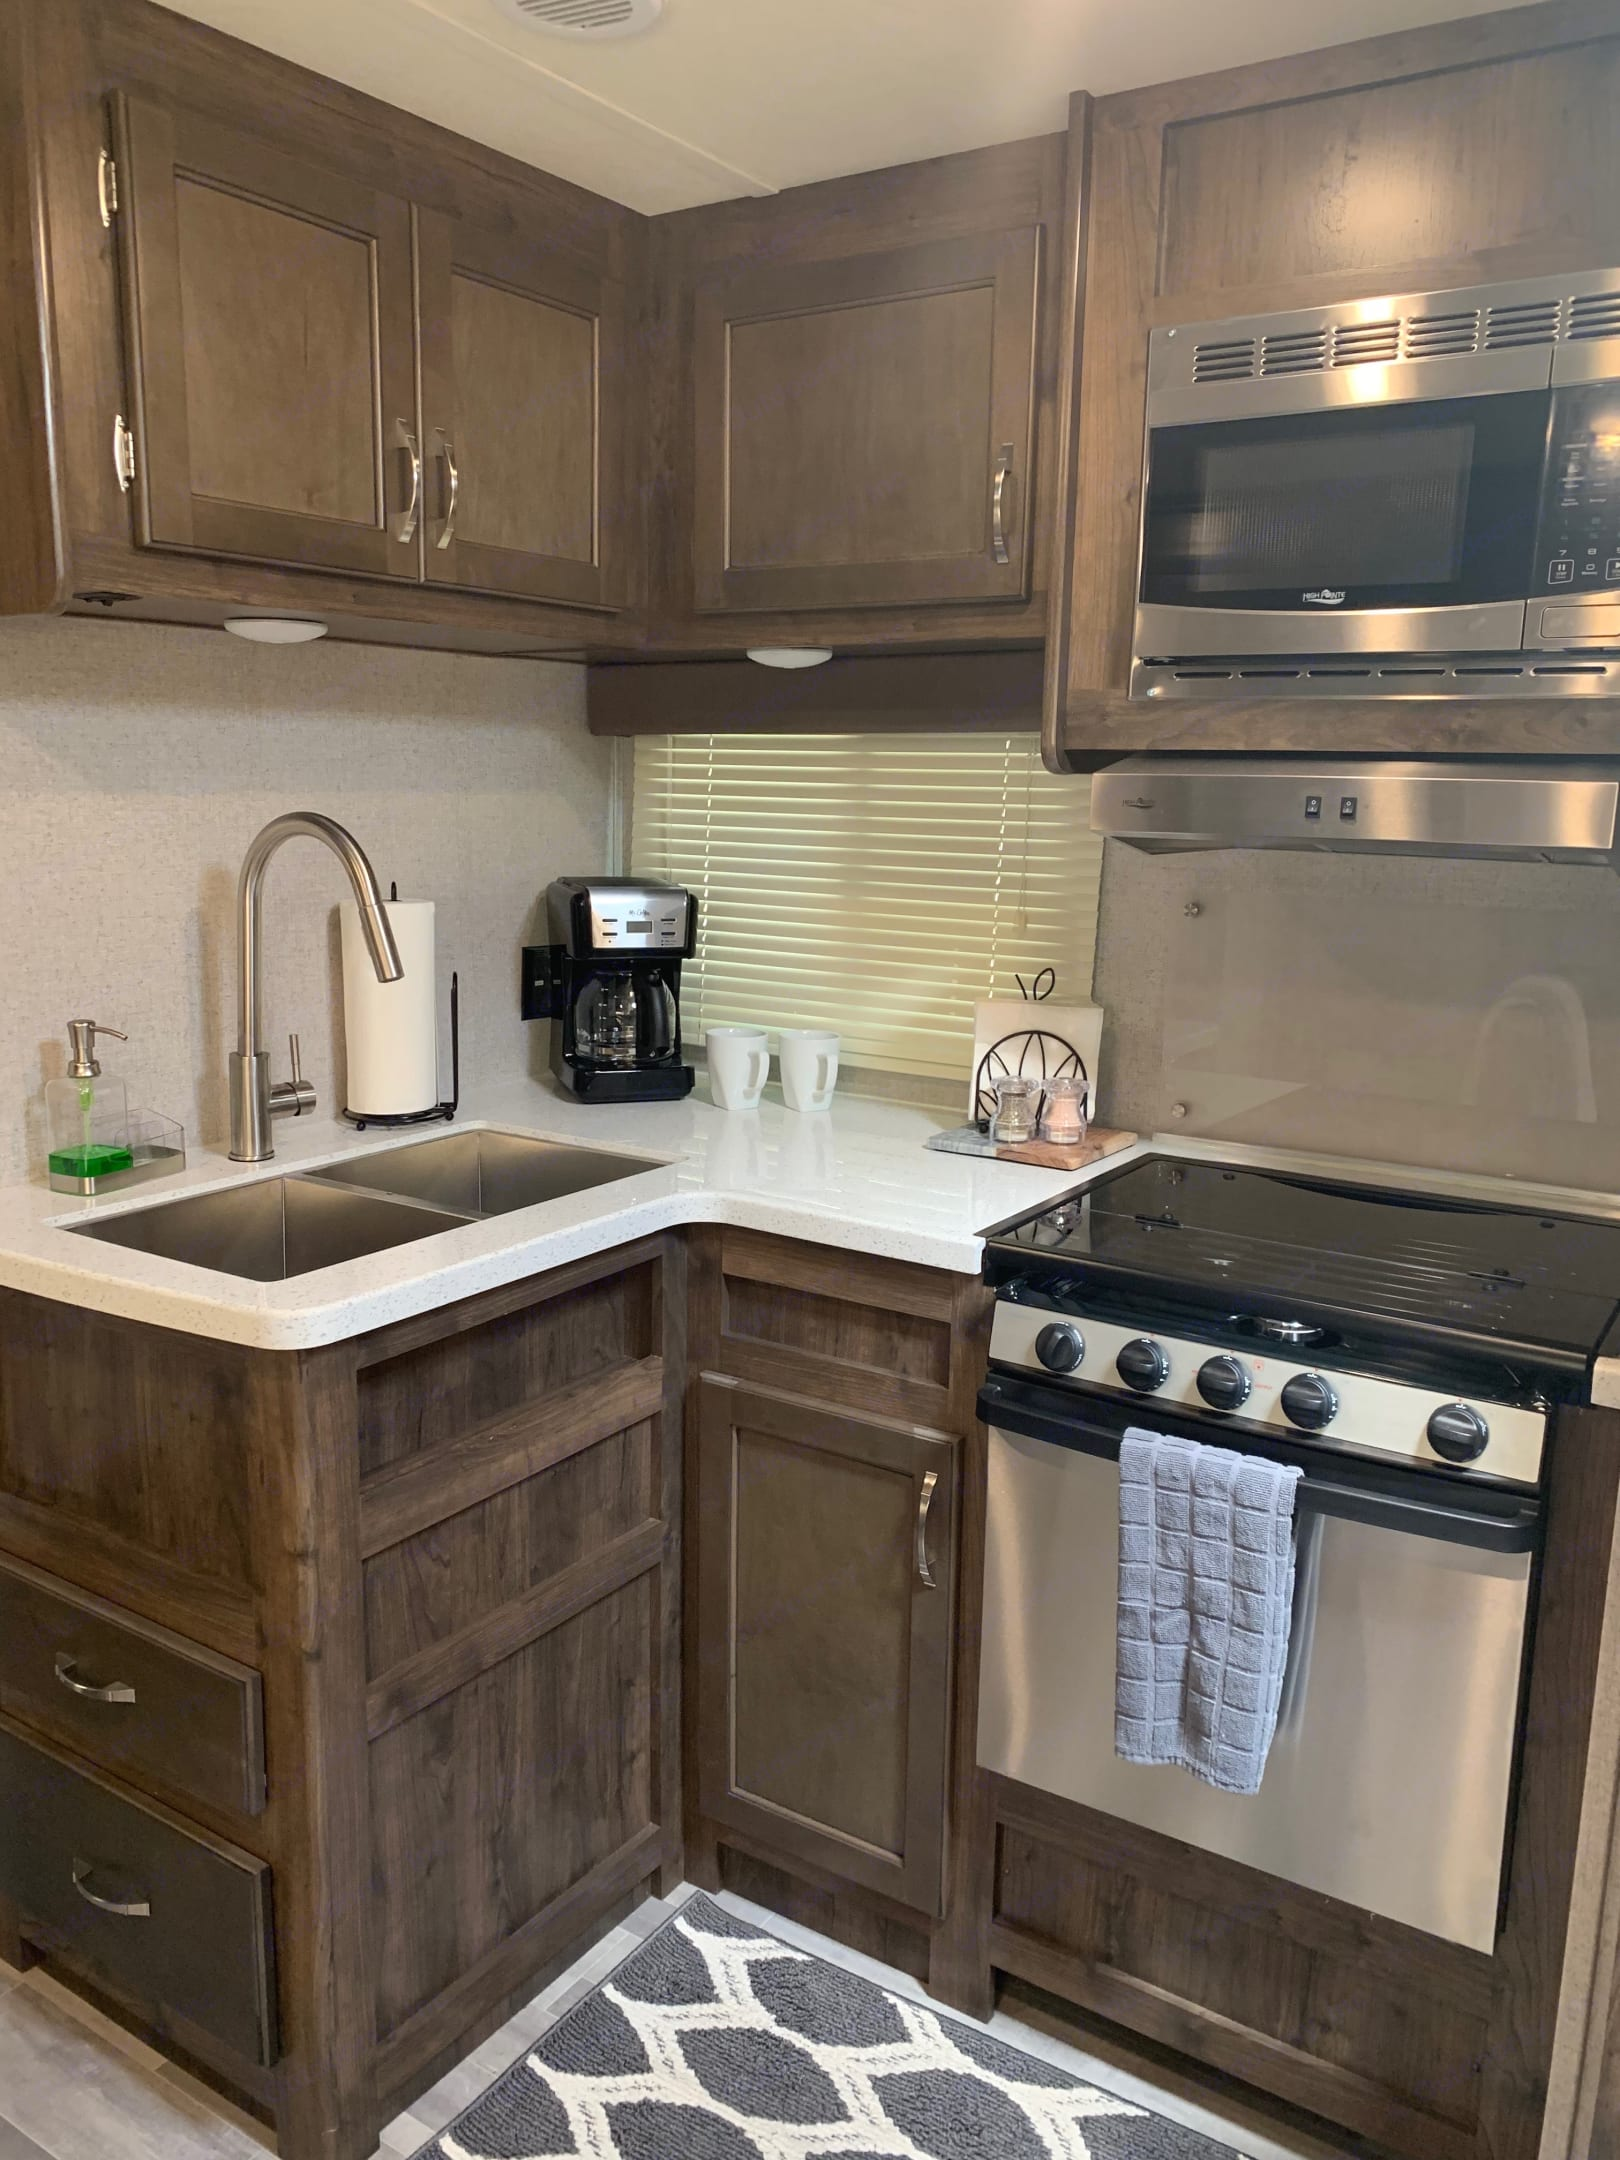 Nice size kitchen with double sink with lid to make more counter space, full size coffee pot, stove/oven and microwave.. Dutchmen Aerolite 2018